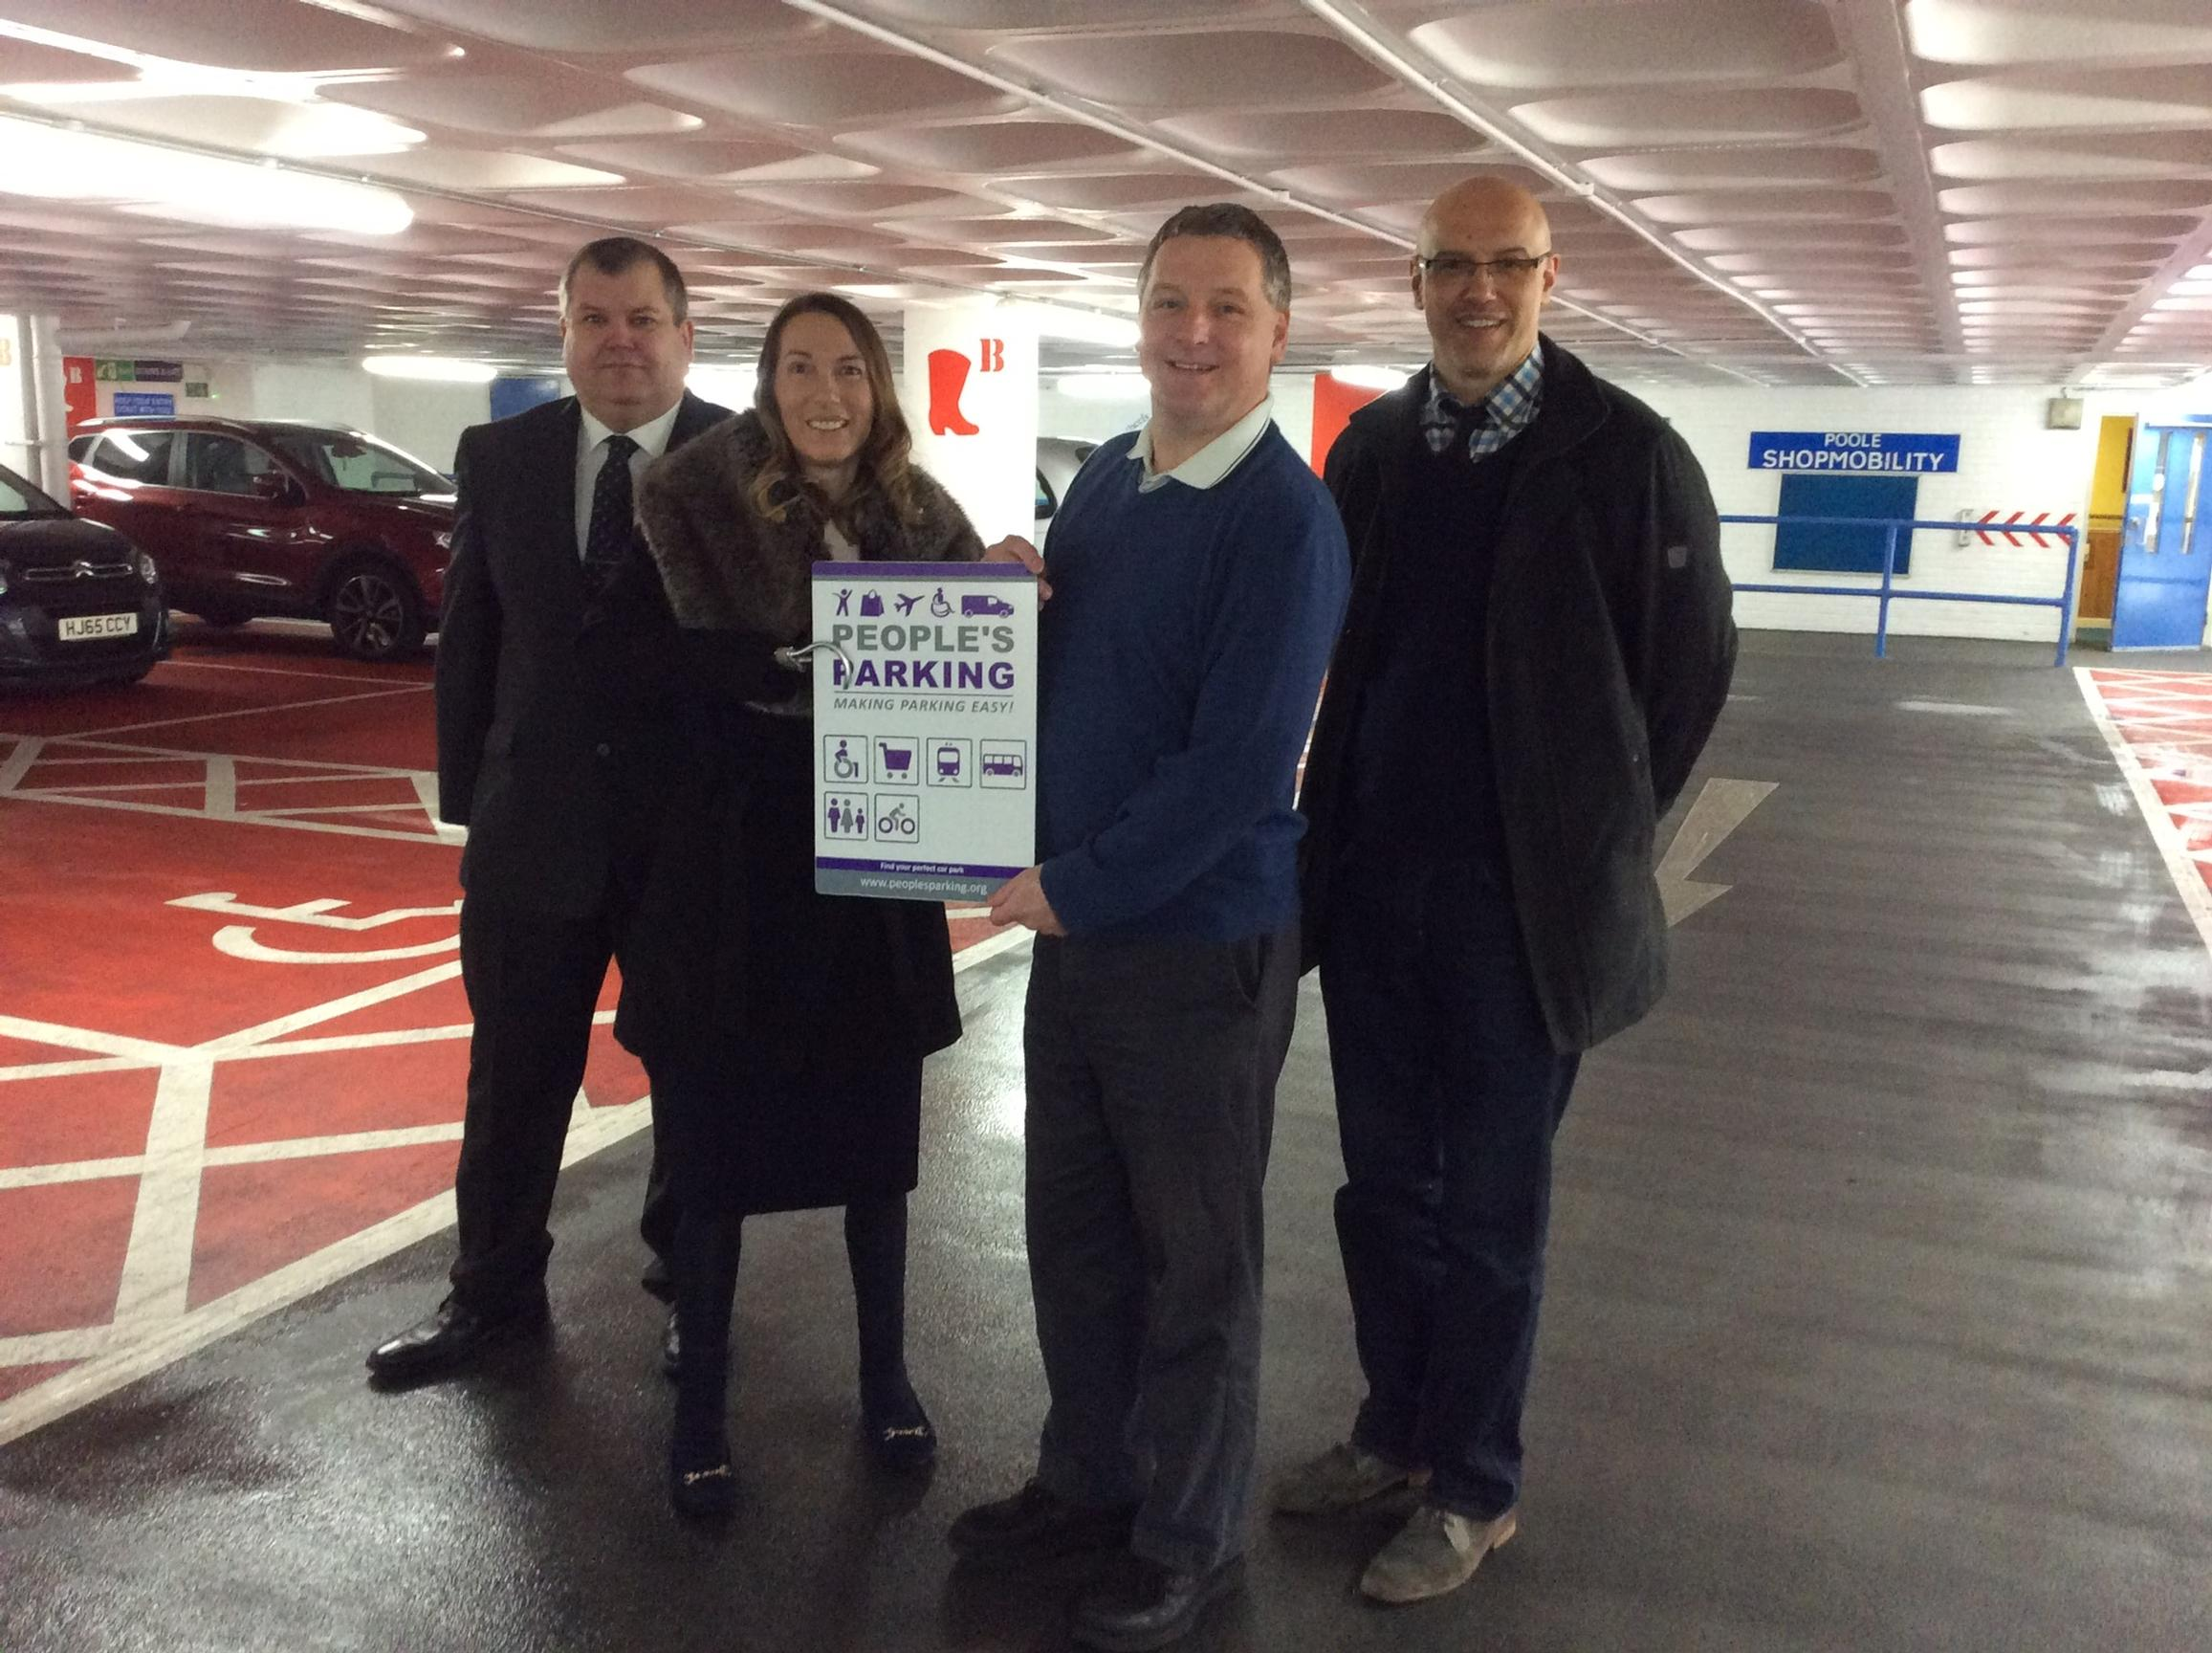 Dolphin rewards the Dolphin centre with People's Parking status